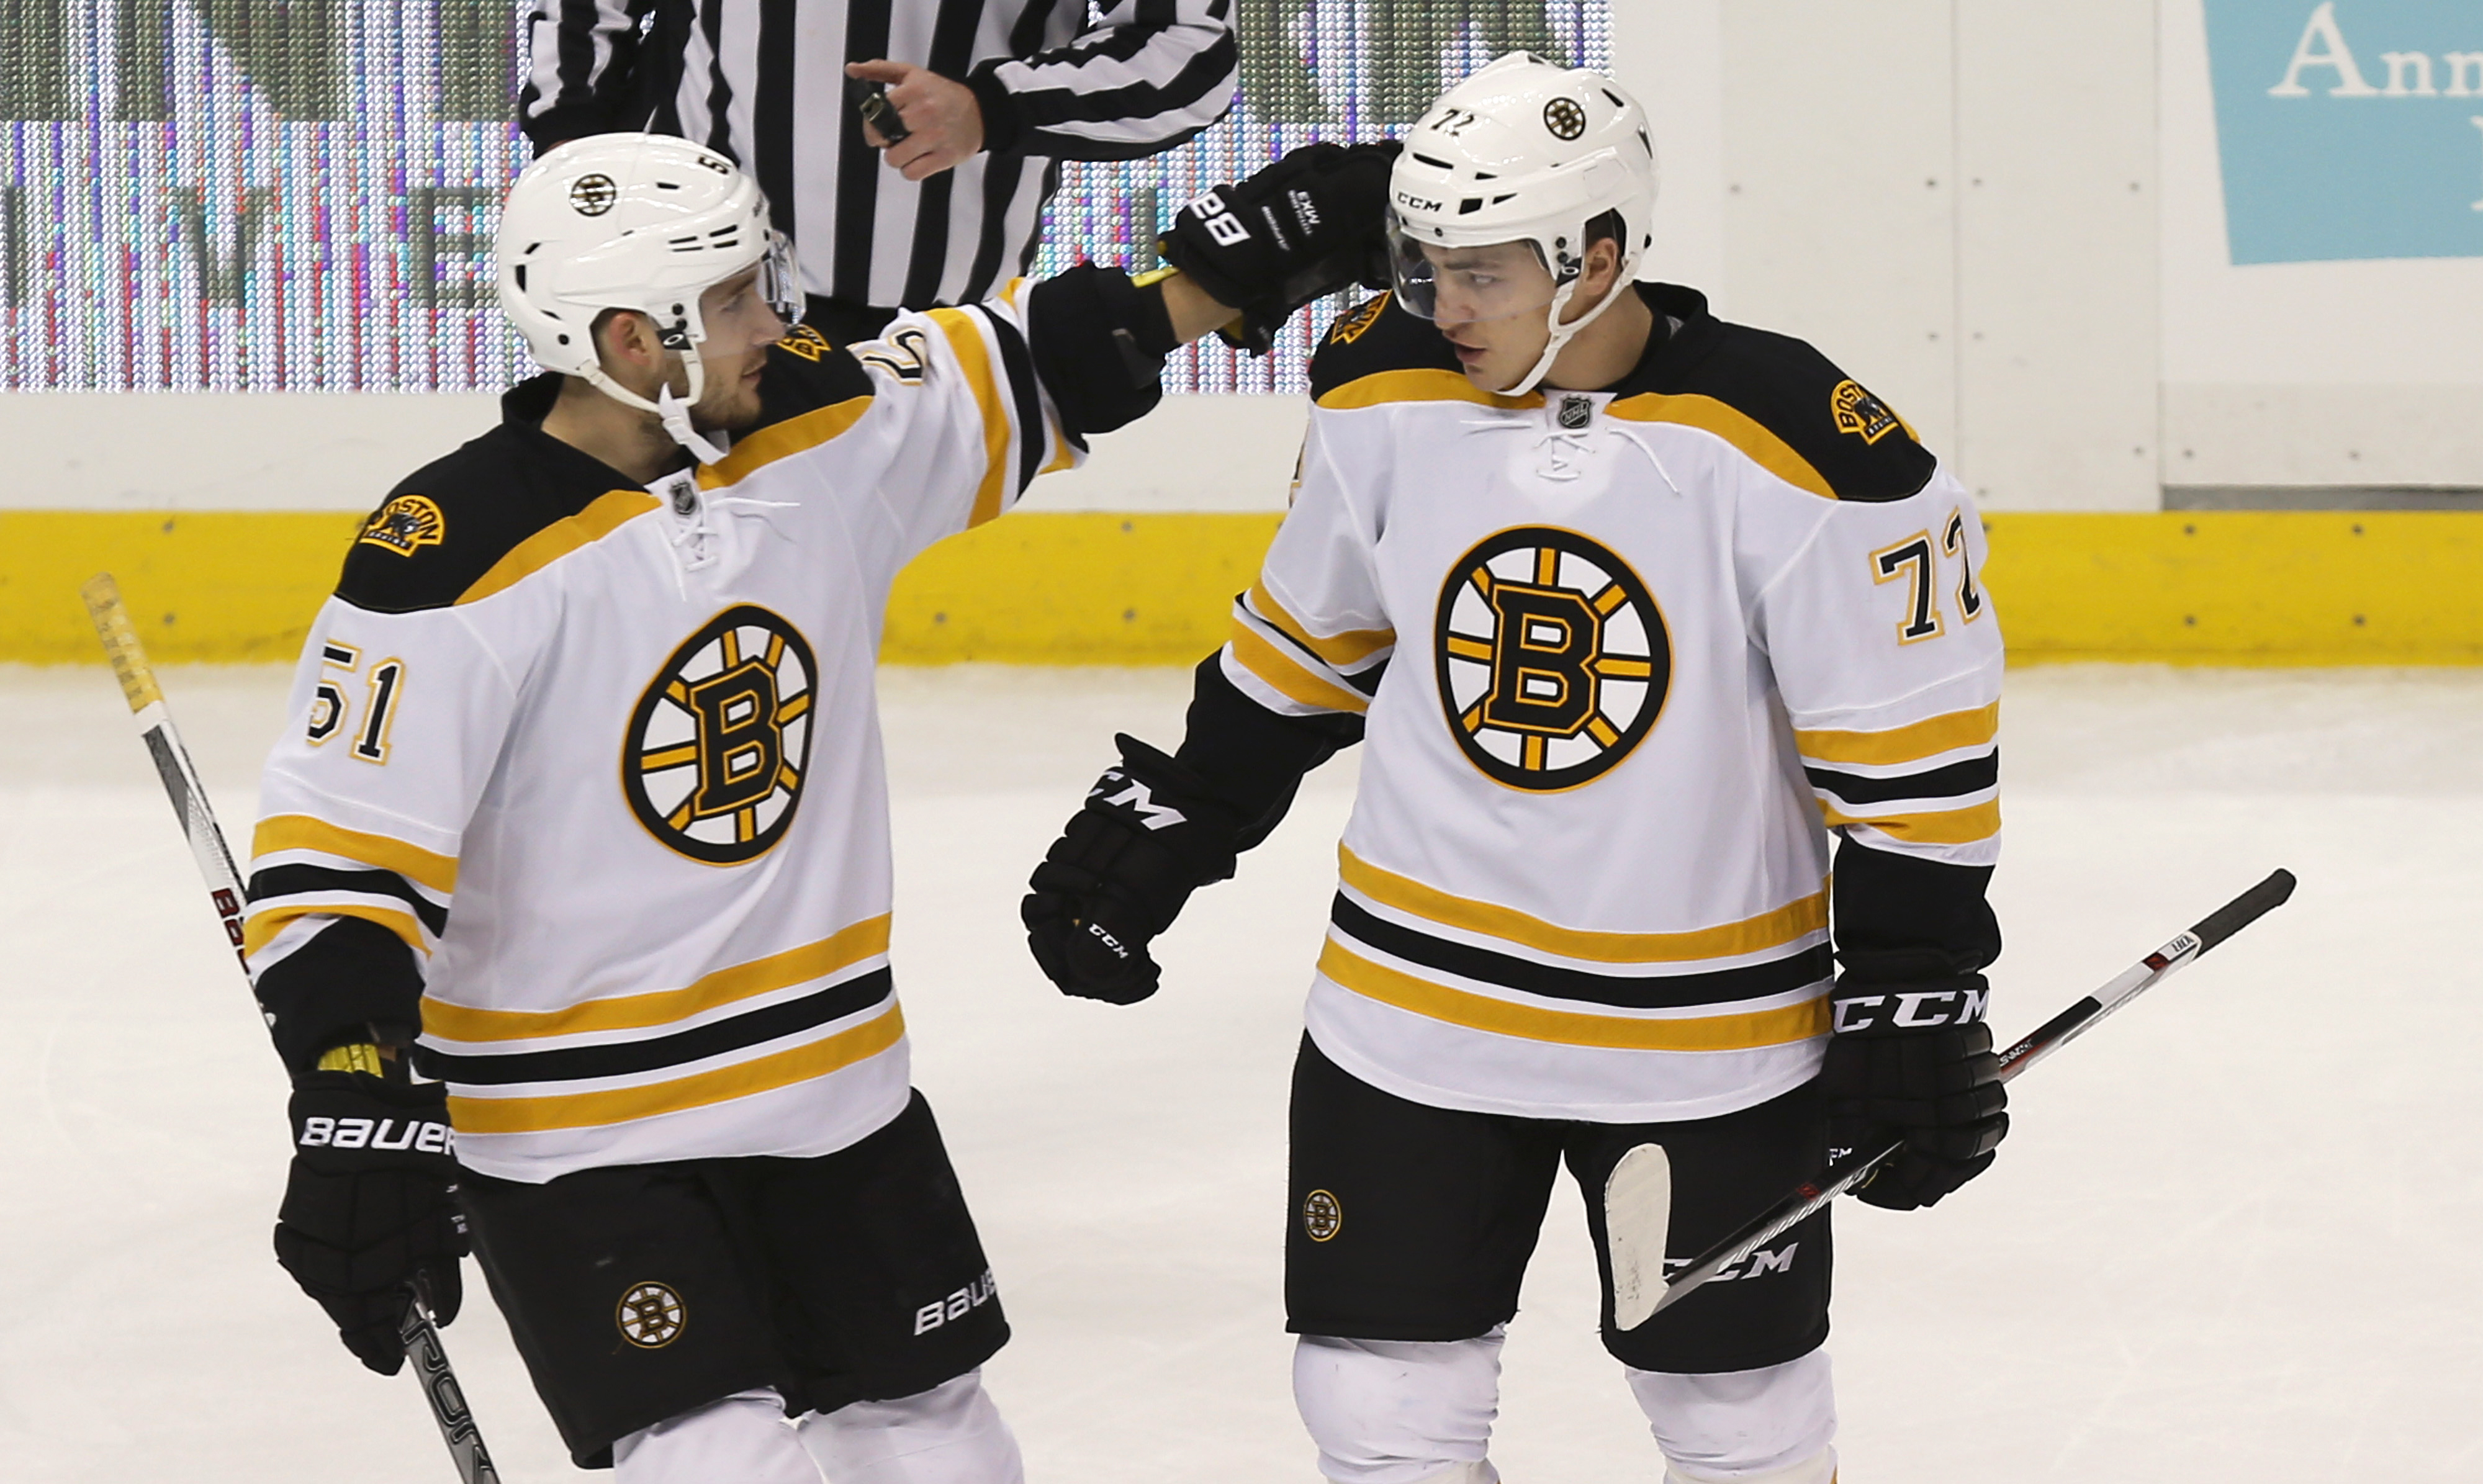 Boston Bruins' Frank Vatrano (72) is congratulated by Ryan Spooner (51) after scoring against the Pittsburgh Penguins during the first period of an NHL hockey game Friday, Dec. 18, 2015, in Pittsburgh. (AP Photo/Keith Srakocic)